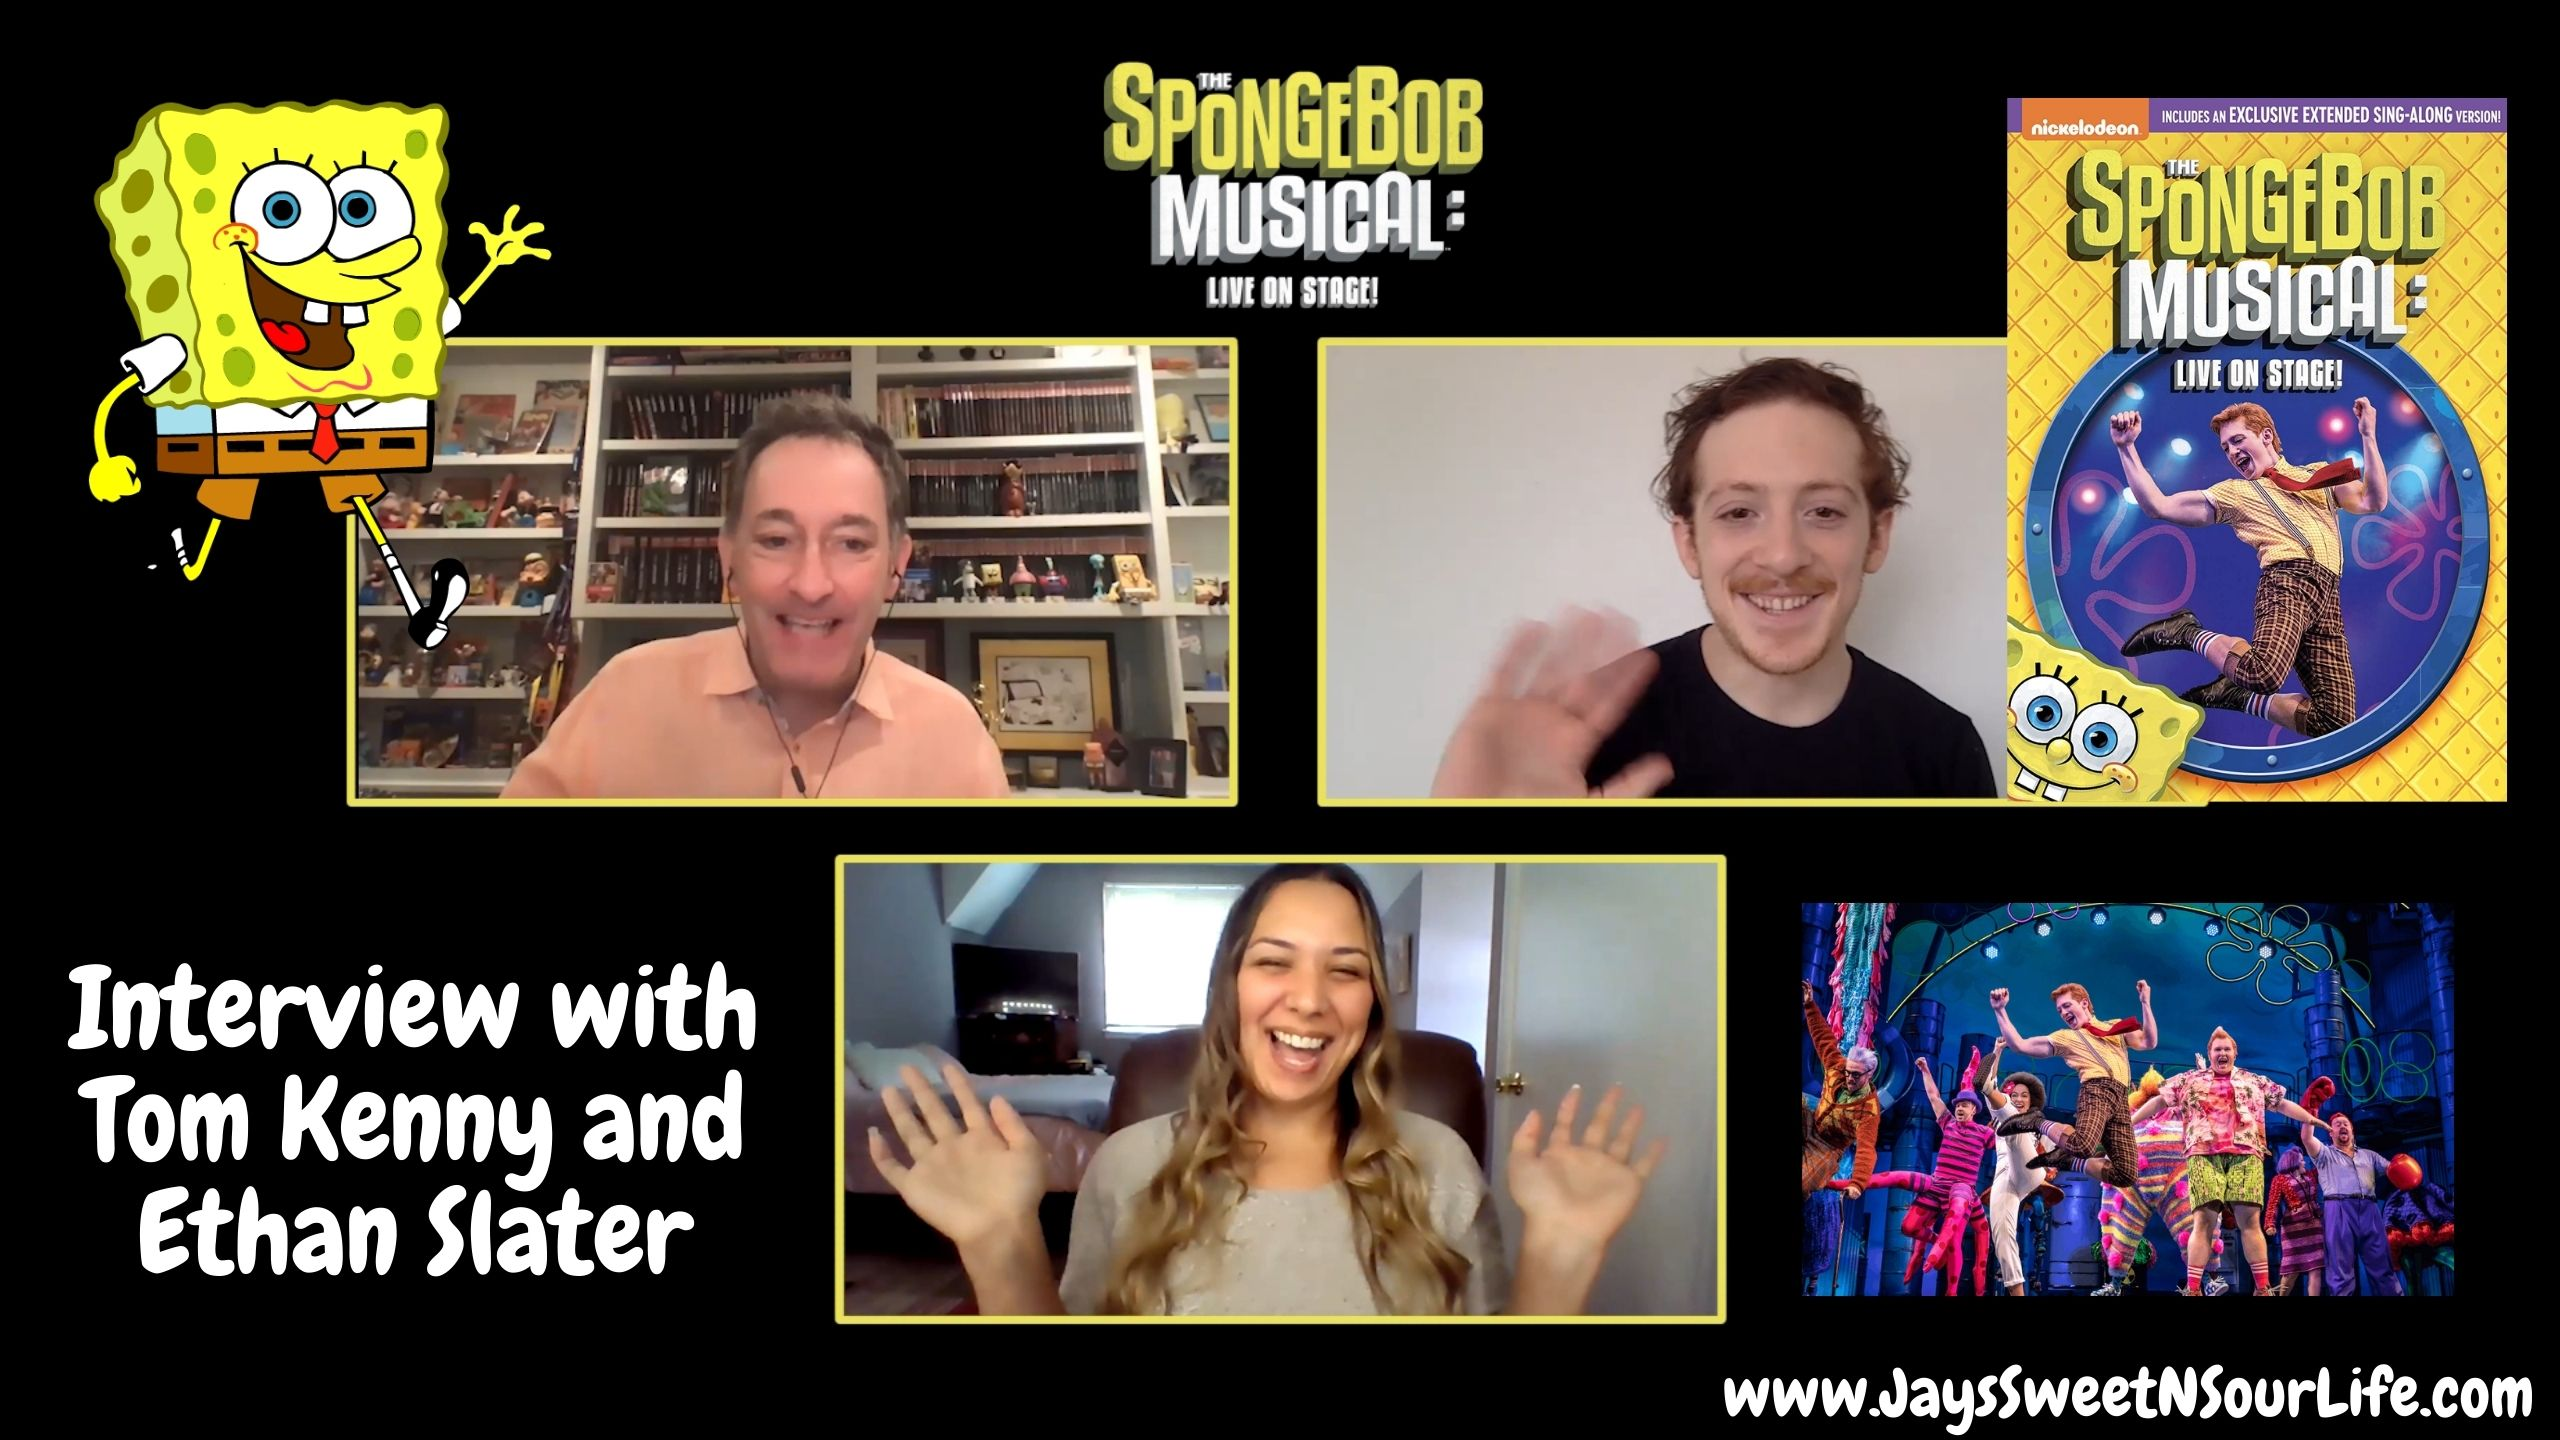 Interview with Tom Kenny and Ethan Slater. Watch my exclusive interview with Tom Kenny and Ethan Slater as we discuss The SpongeBob Musical: Live on Stage! Coming to DVD & Digital Nov 3rd, 2020. Find out what he worlds ONLY 2 Spongebobs think about this incredible under the sea adventure LIVE on stage in Bikini Bottom.